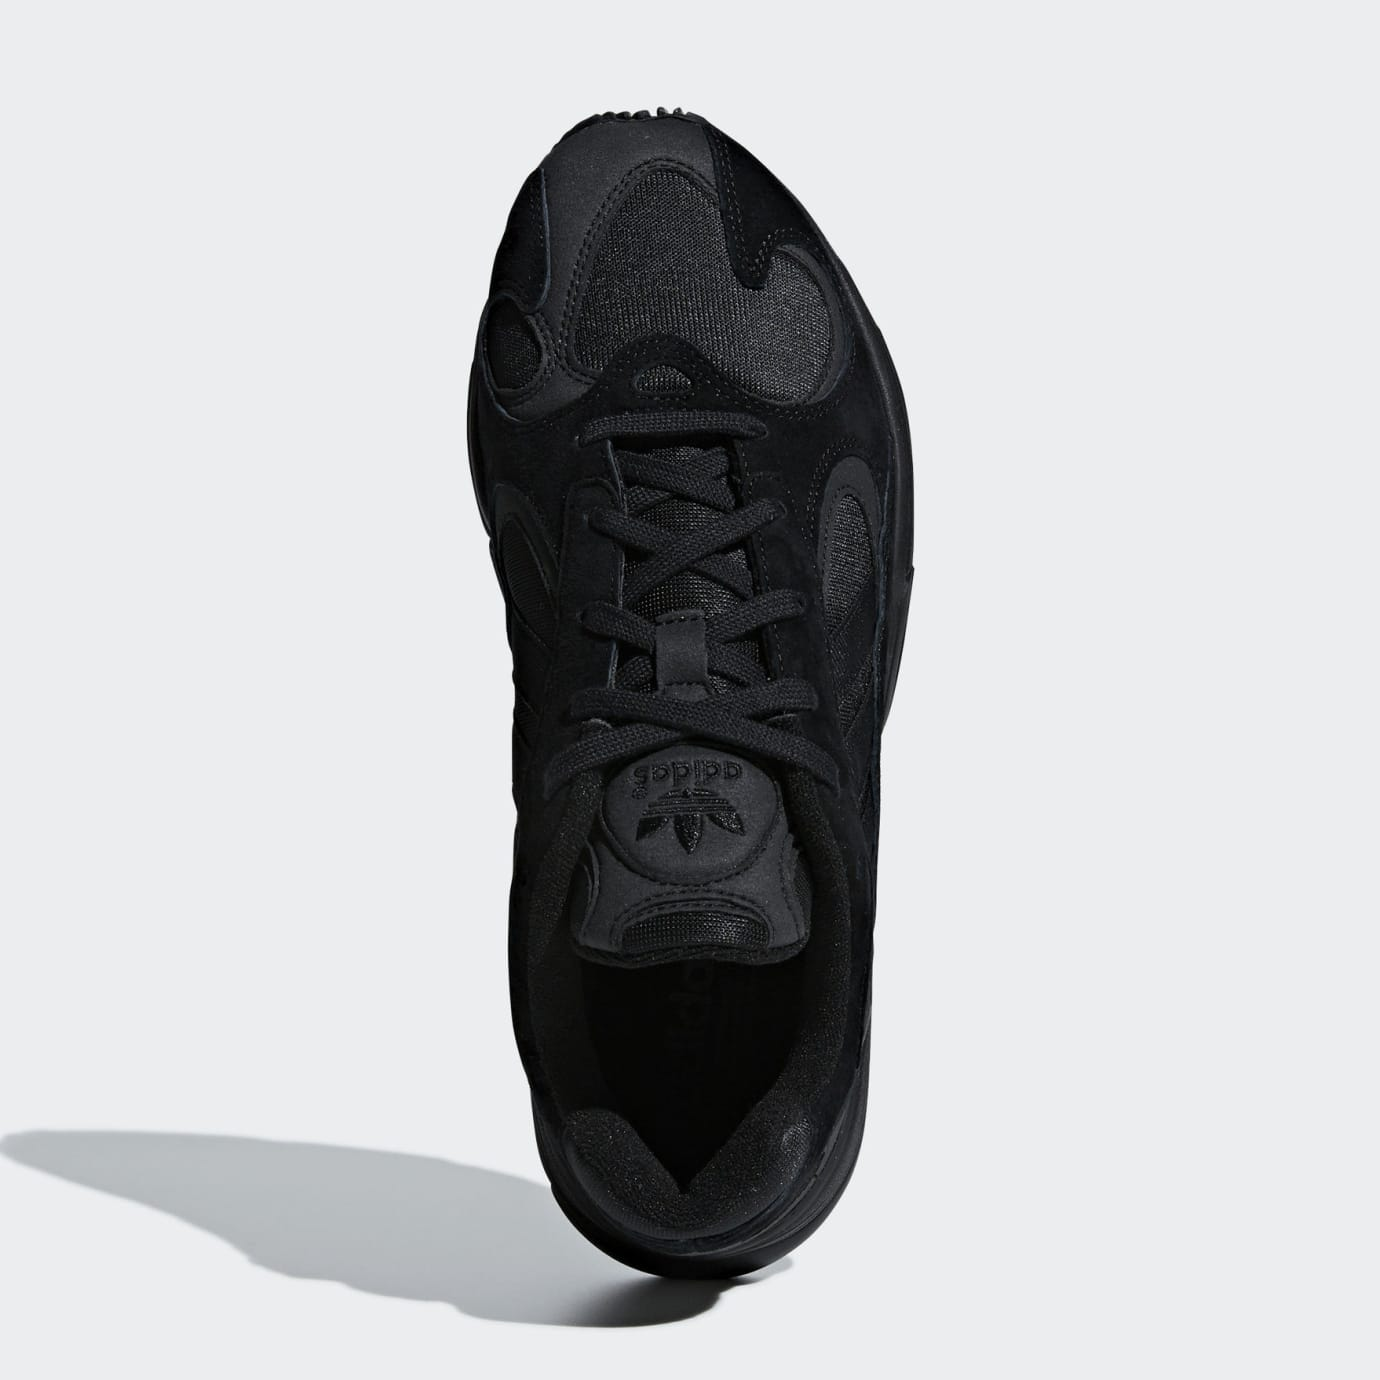 Image via Adidas Adidas Yung-1 Triple Black Release Date G27026 Top bf95c2d1e